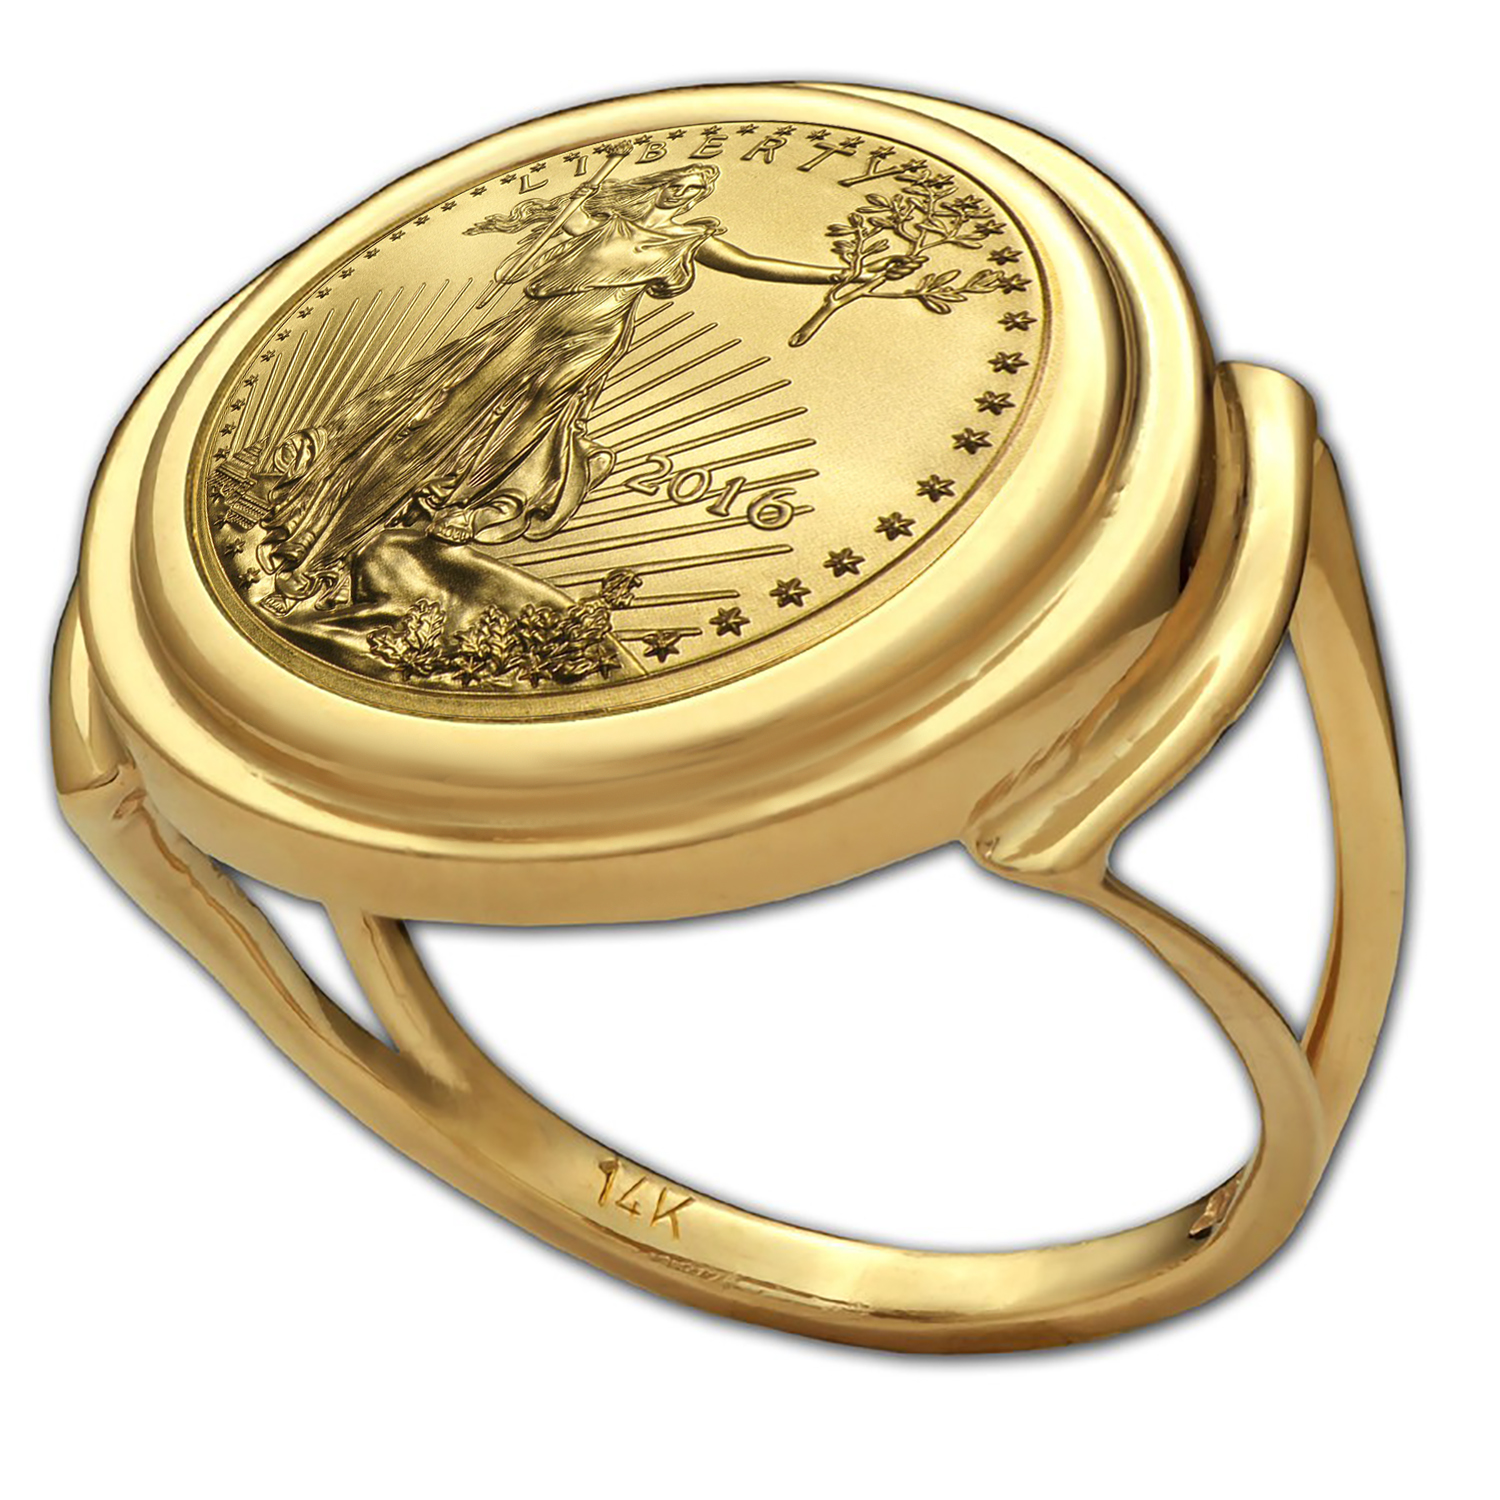 2016 1/10 oz Gold Eagle Ring (Polished-Prong)